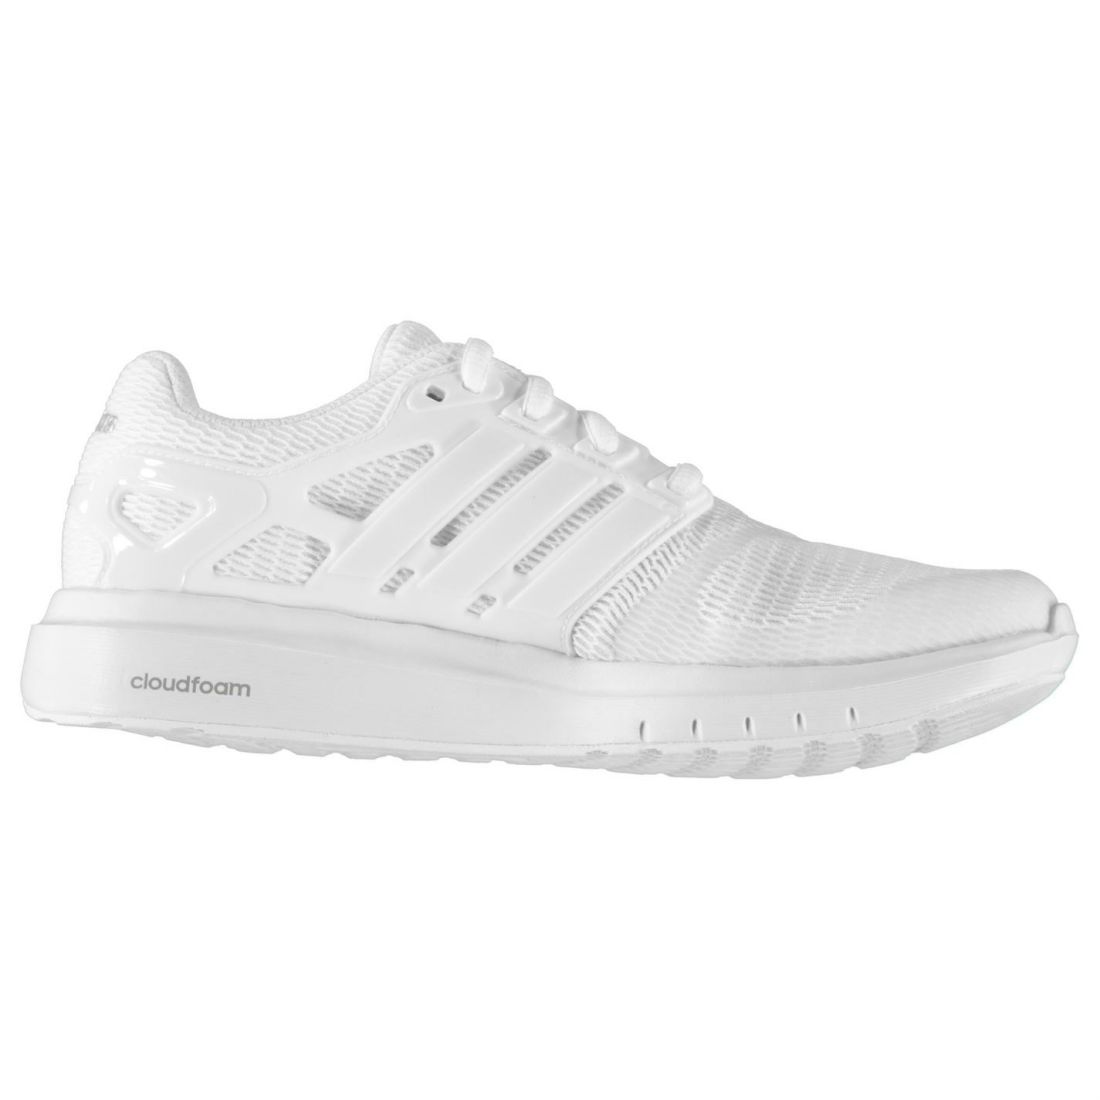 a22bc38ba Energy Cloud V Sneakers Ladies Runners shoes Lightweight Adidas Ventilated  nrstvn8608-Women